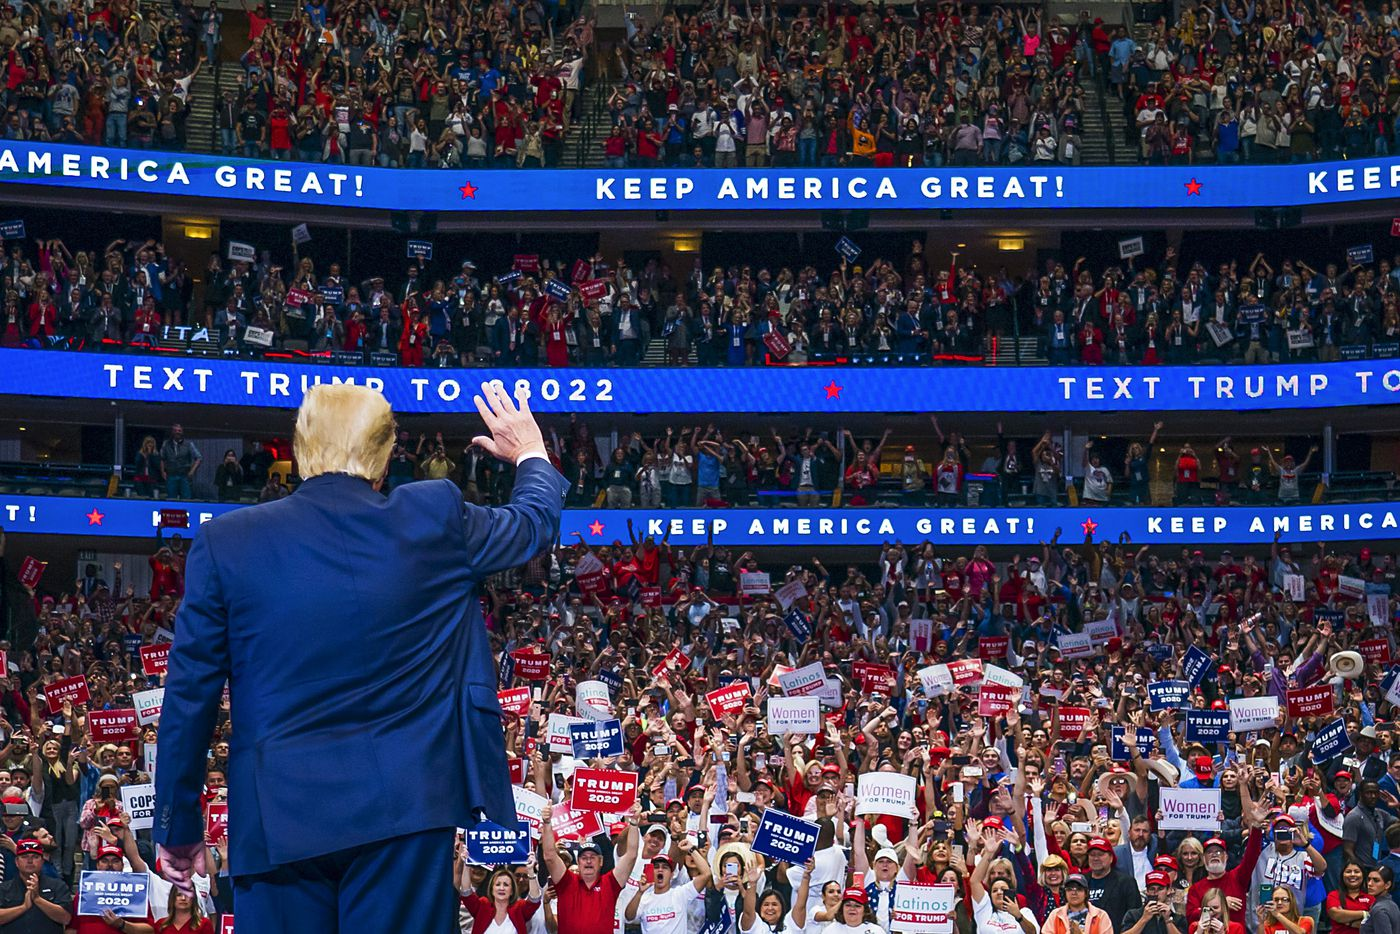 President Donald Trump waves to the crowd as he arrives for a campaign rally at the American Airlines Center on Thursday, Oct. 17, 2019, in Dallas.